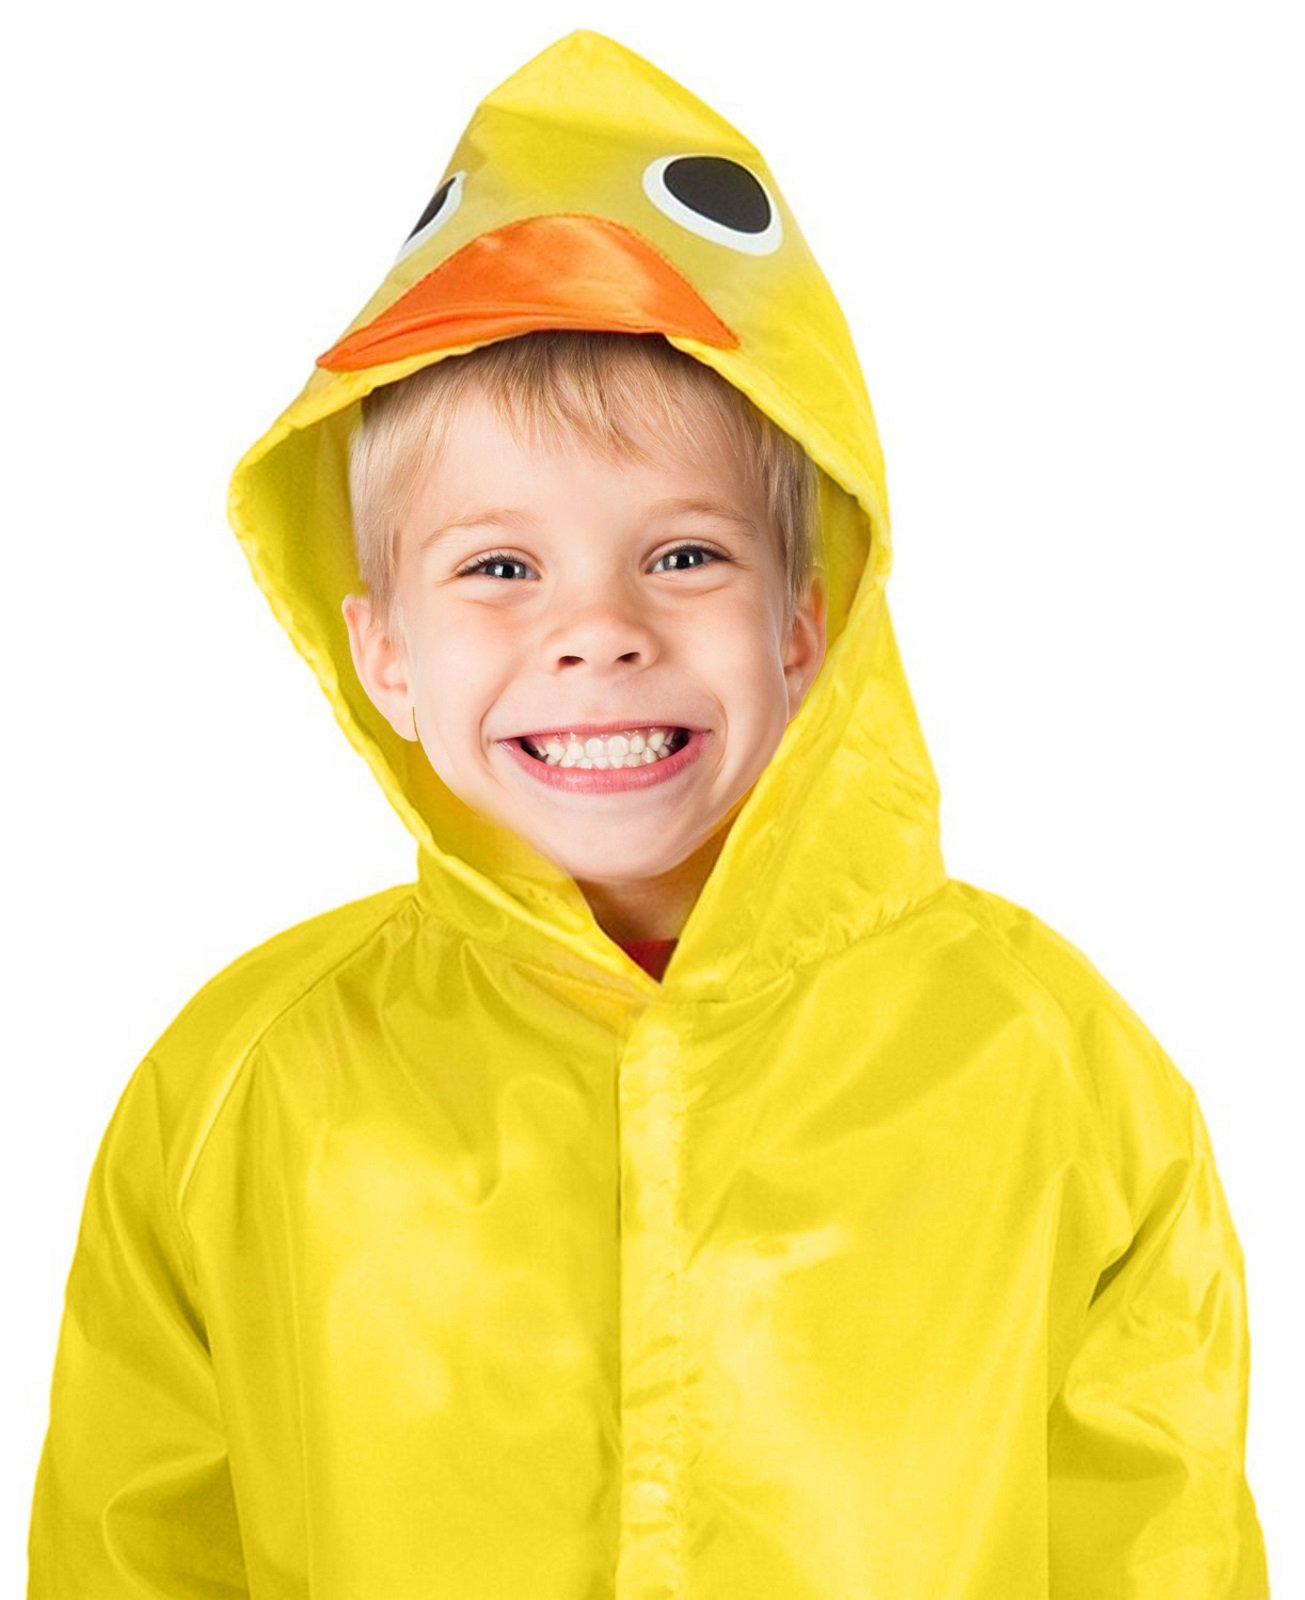 TRIBUTE Safe PVC Free Kids Rain Coat Boys or Girls Ages 7-12 Rain Poncho For Children With Zipper Fun Raincoat, Yellow Duck by TRIBUTE (Image #1)